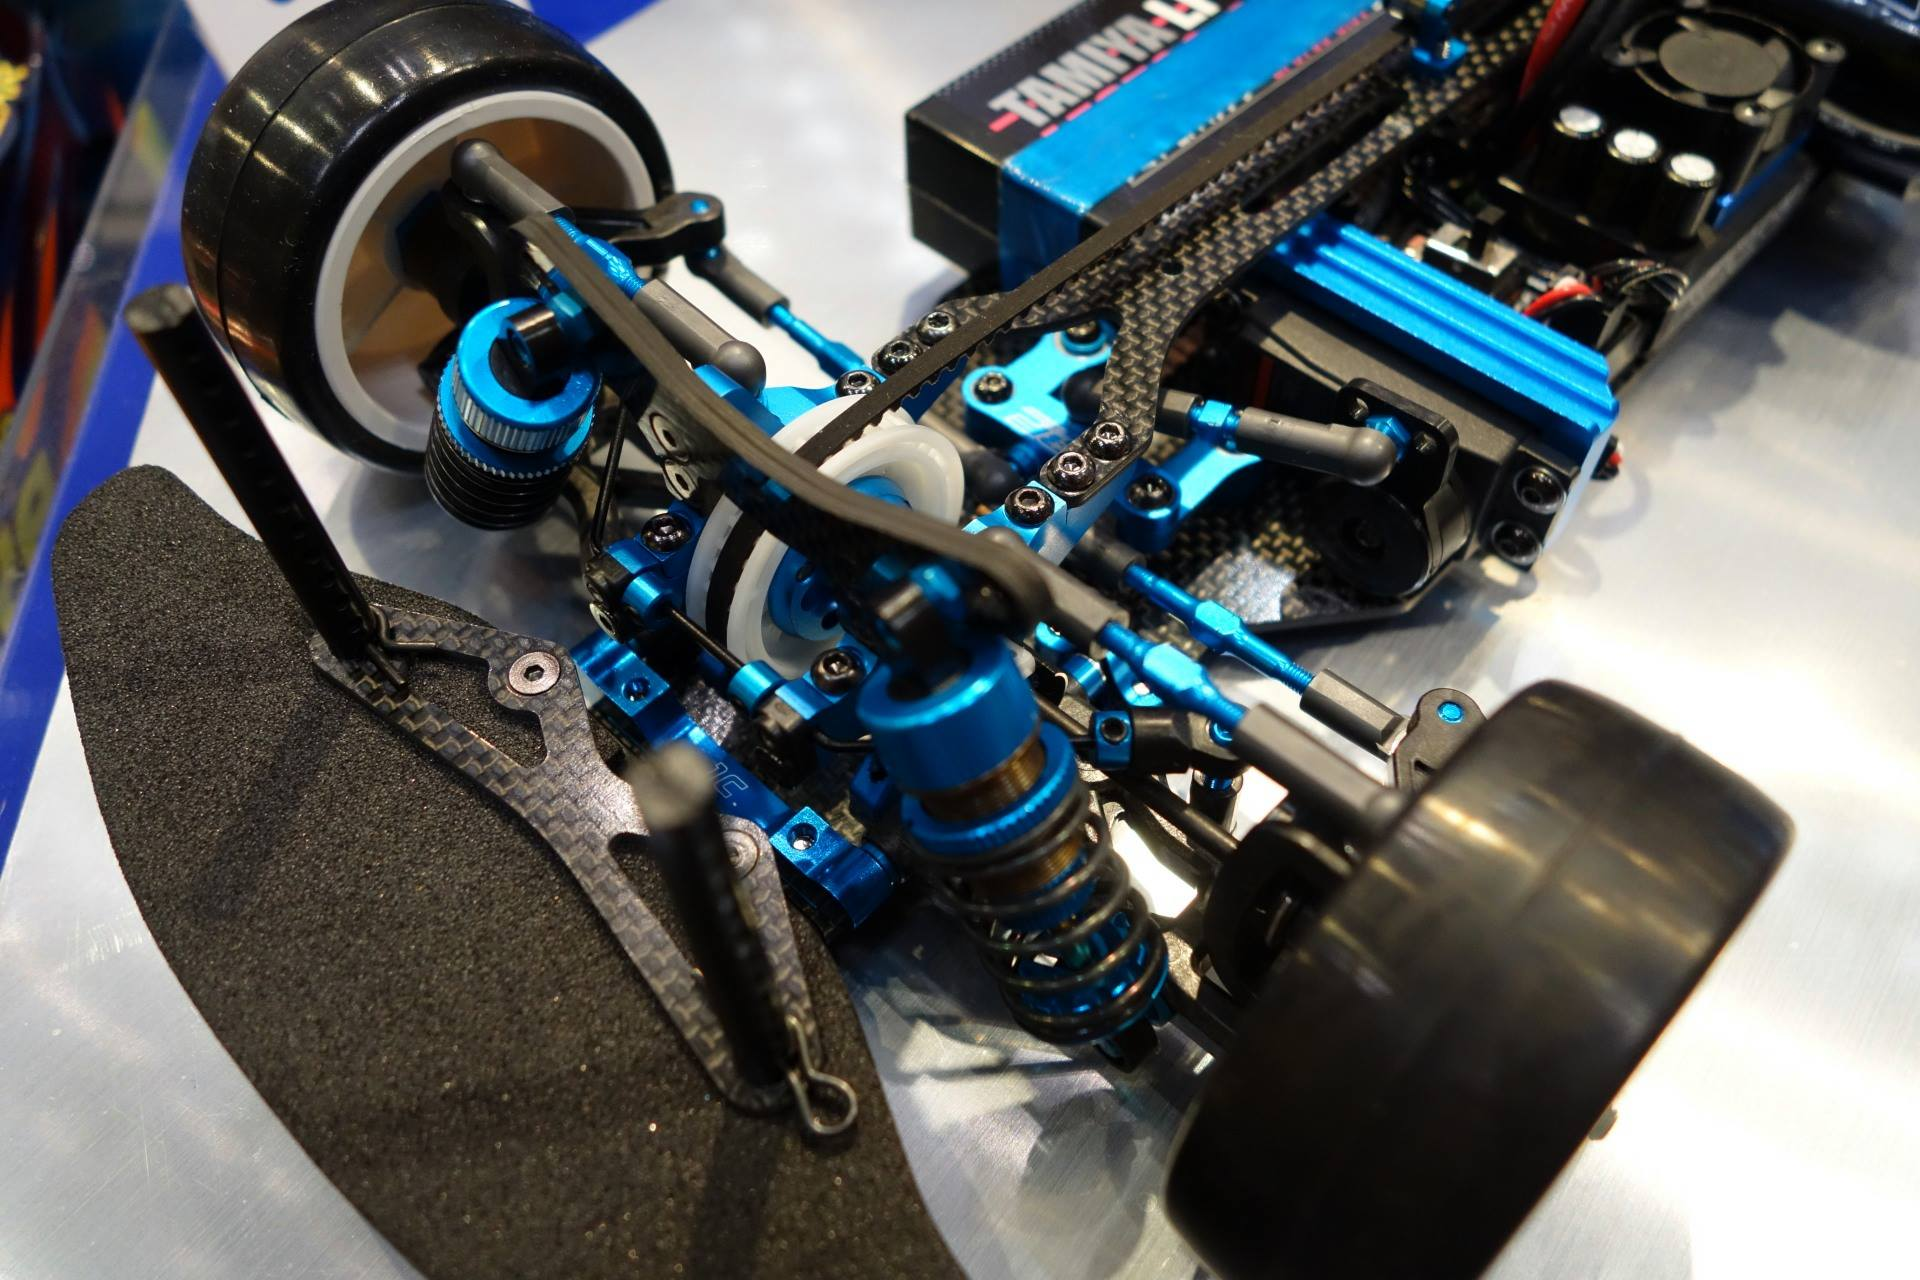 Rc Racing August 2017 Additionally Traxxas Slash 4x4 Slipper Clutch On Parts Diagram Pictures Of Kevco